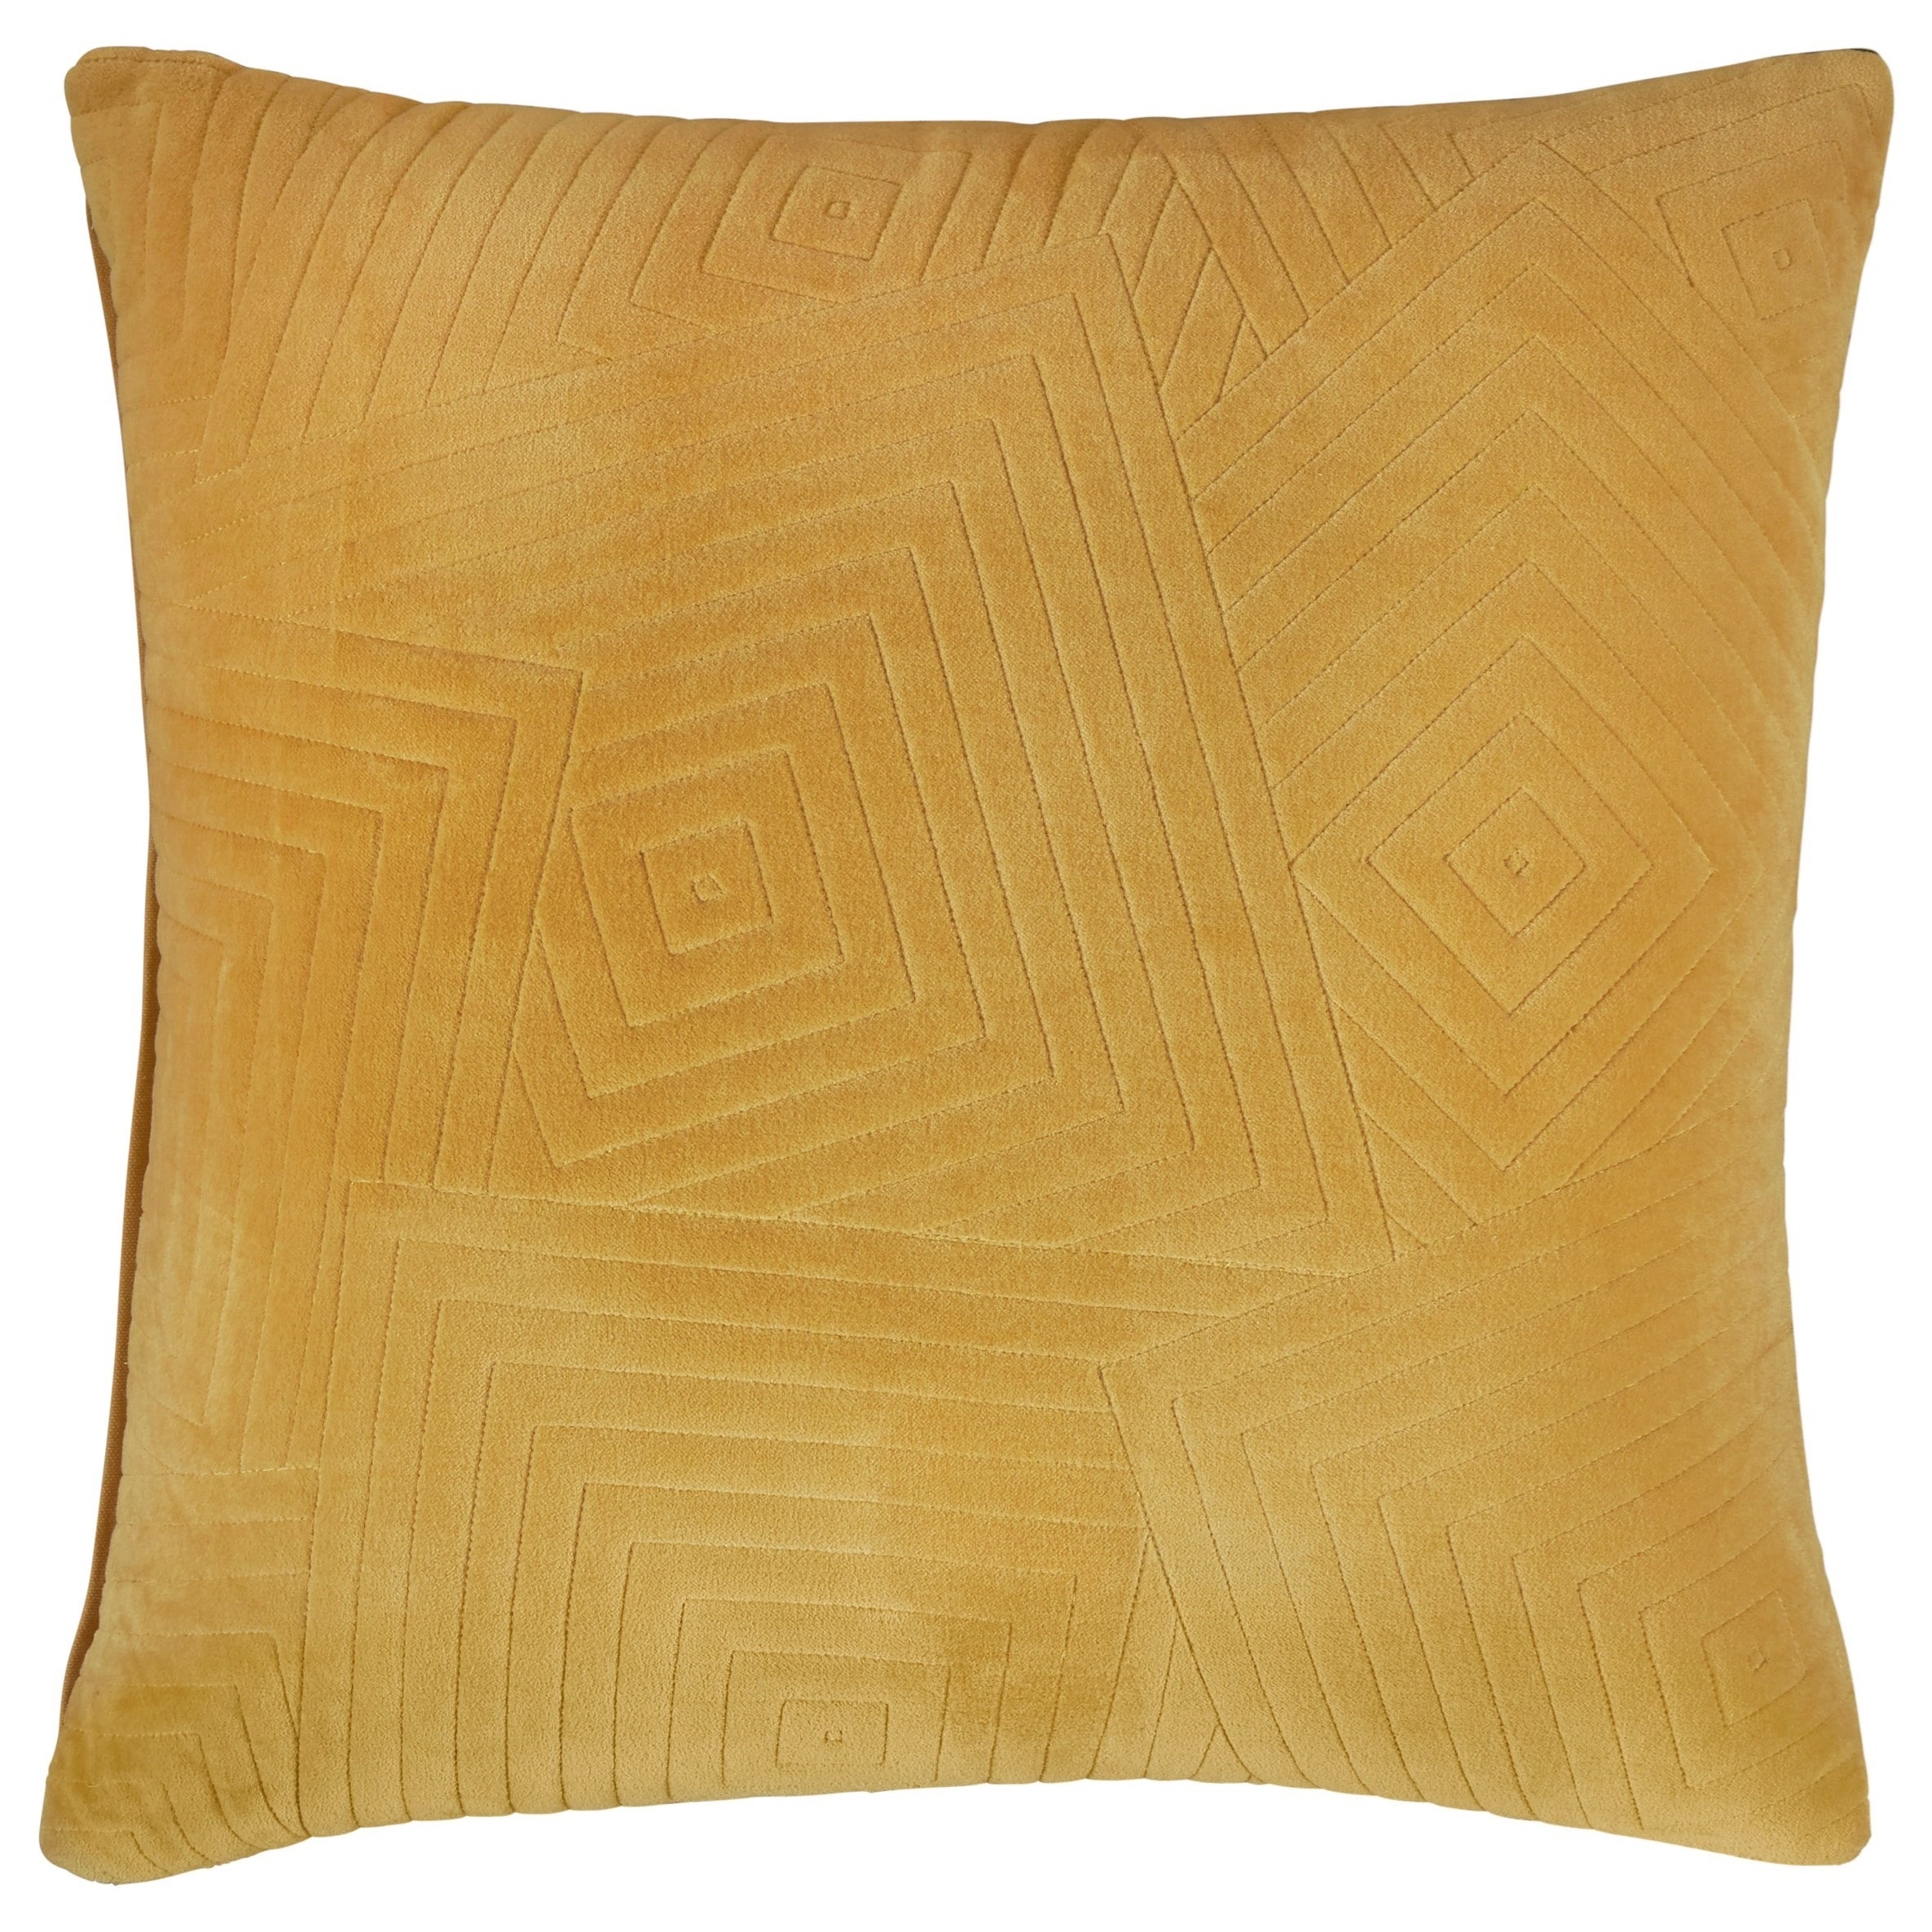 Pillows Kastel Golden Yellow Pillow by Signature Design by Ashley at Northeast Factory Direct